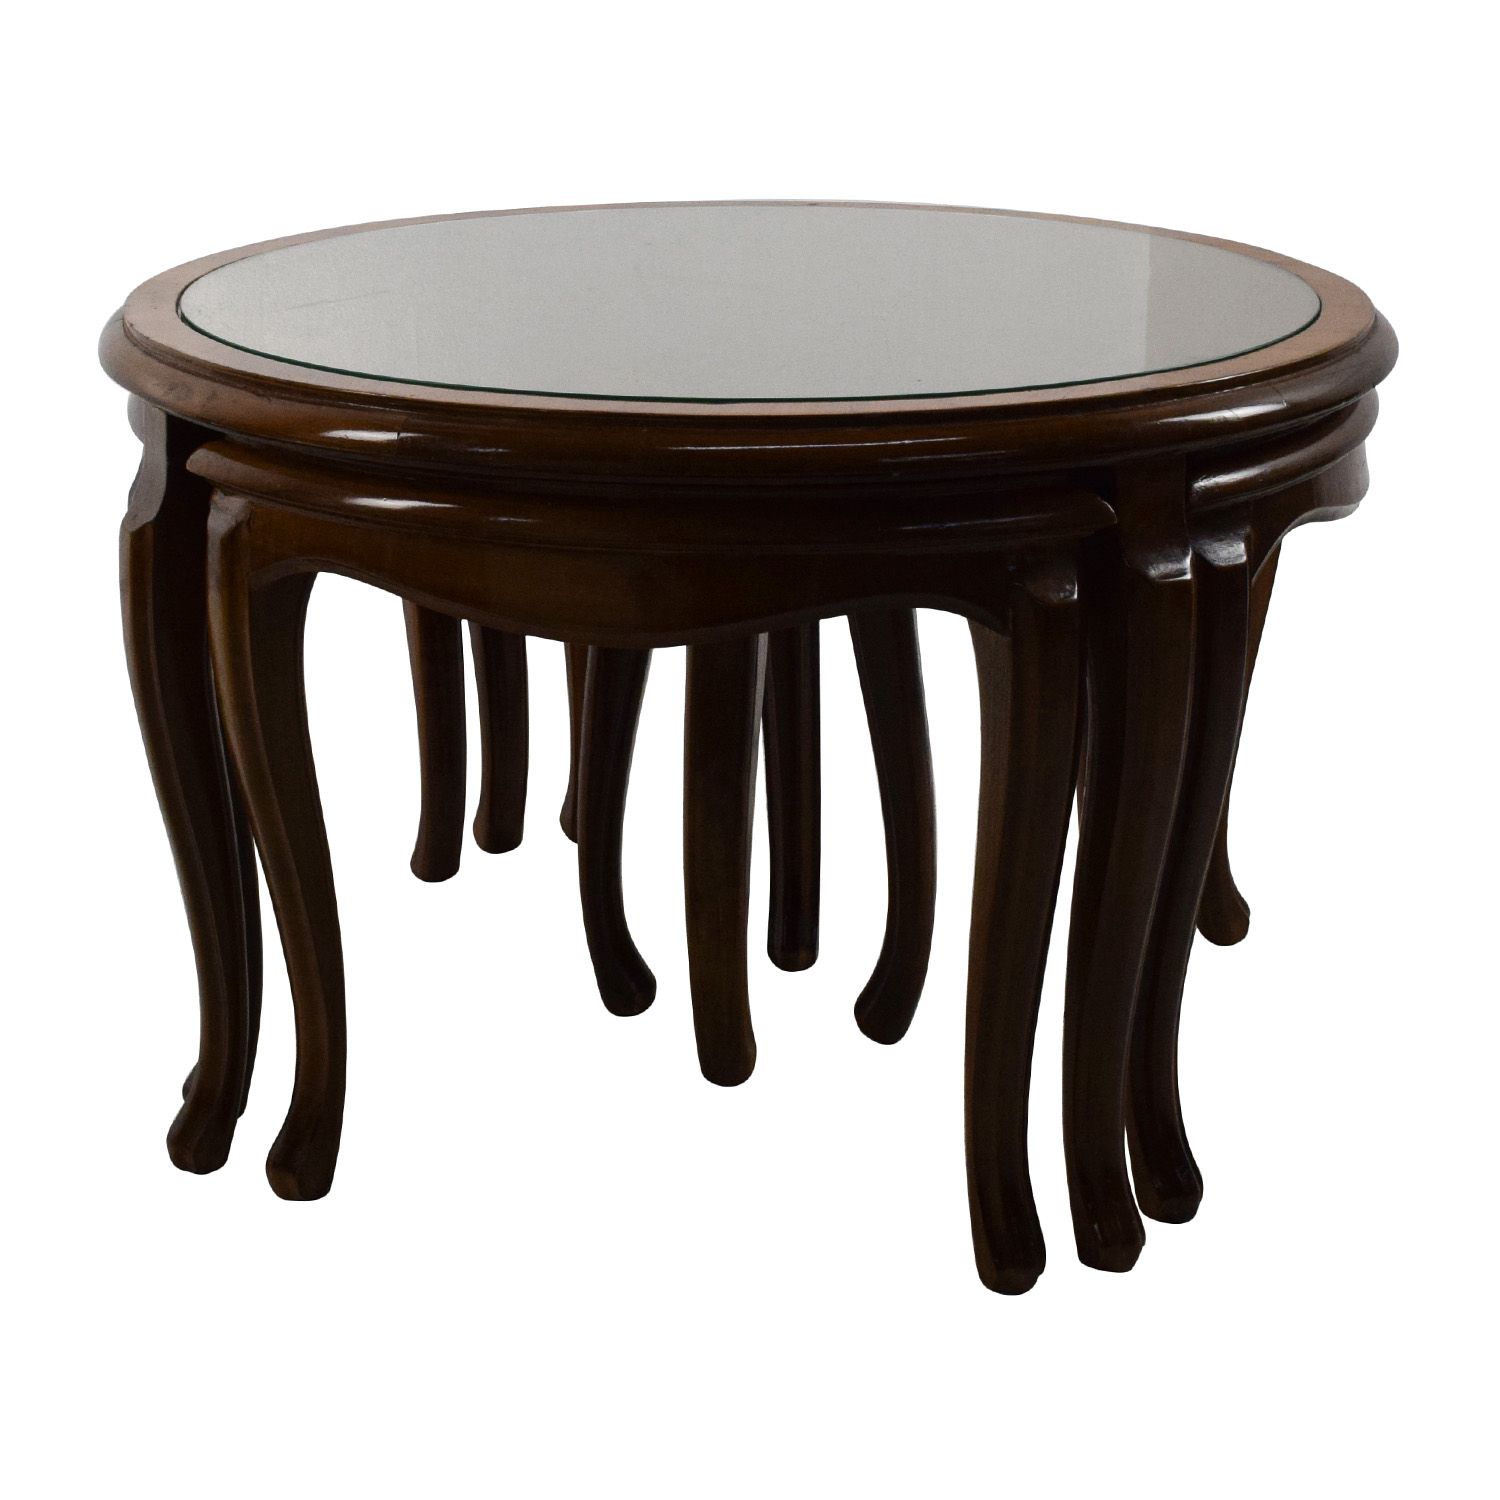 69 off round glass top coffee table with 4 nesting for Round glass coffee table top